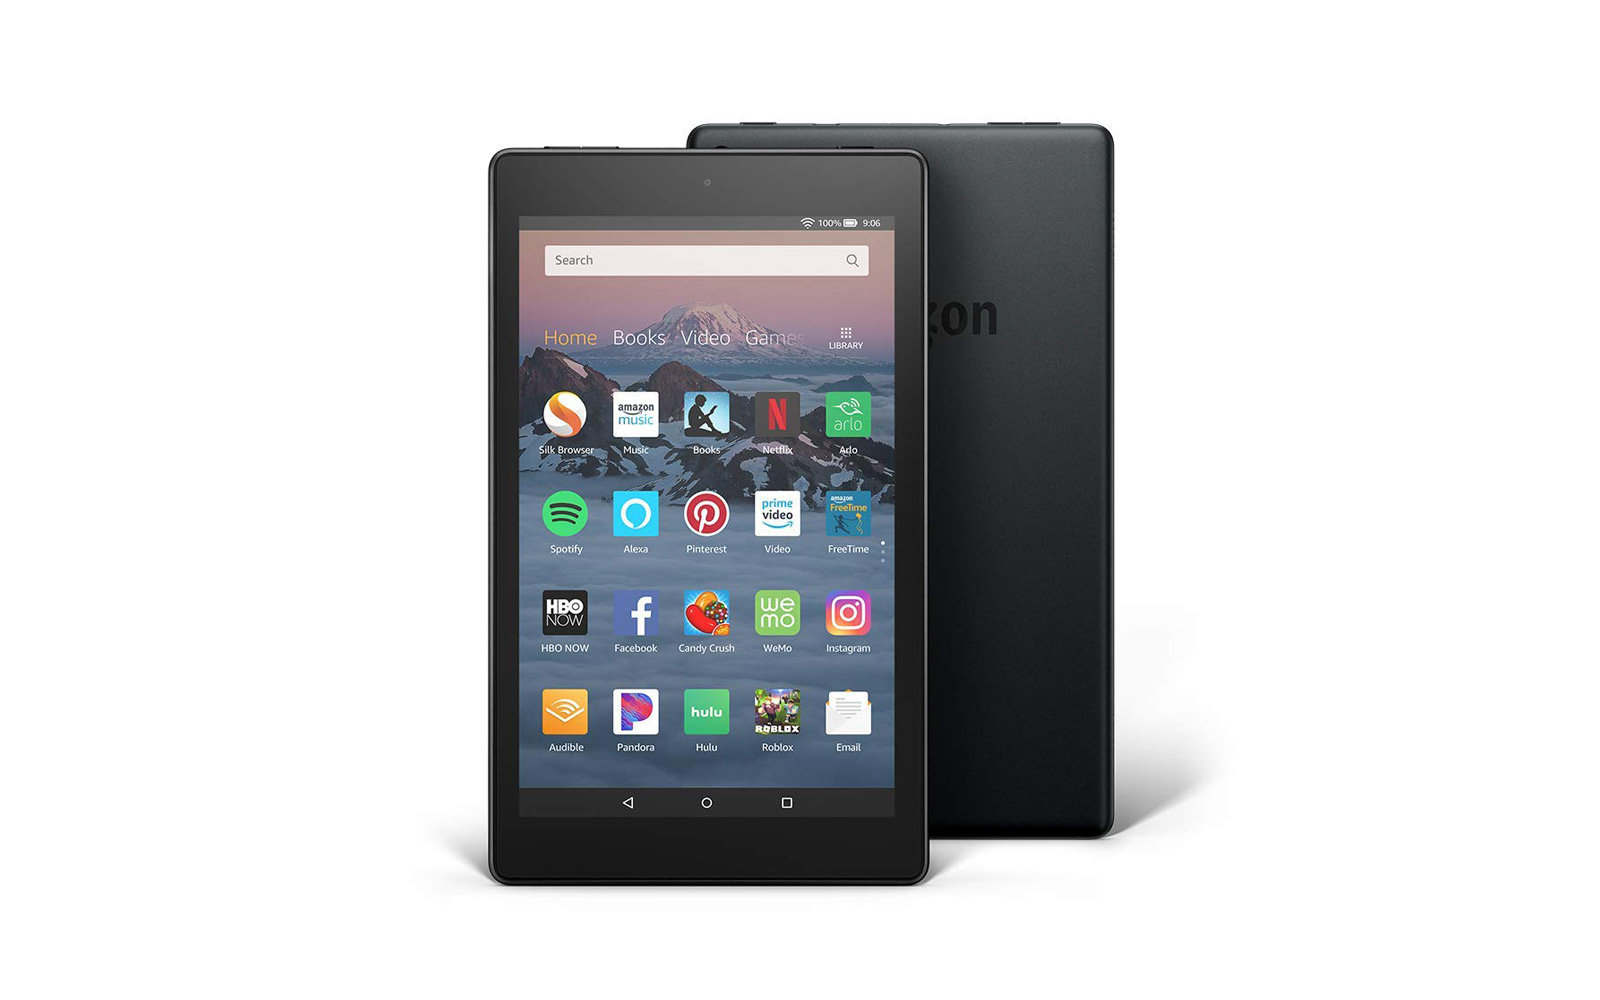 amazon fire hd 8 tablet travel gift